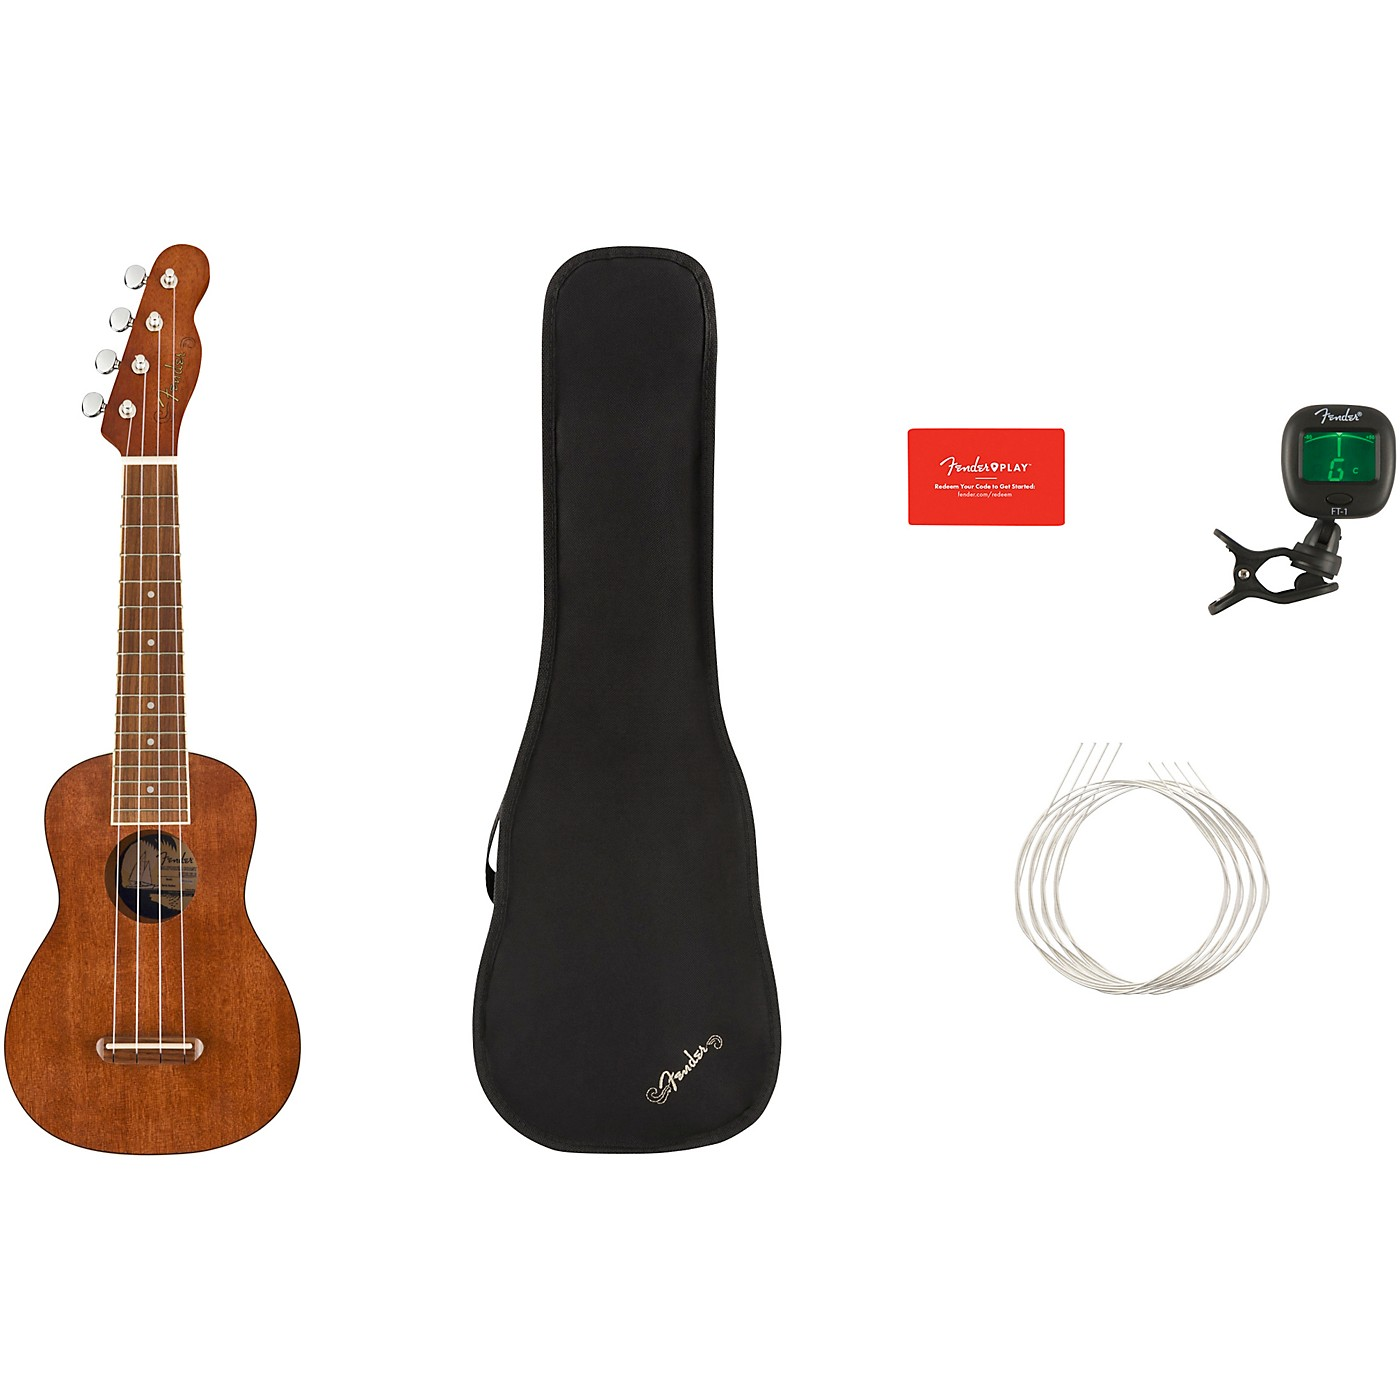 Fender Seaside Soprano Ukulele V2 Walnut Fingerboard thumbnail